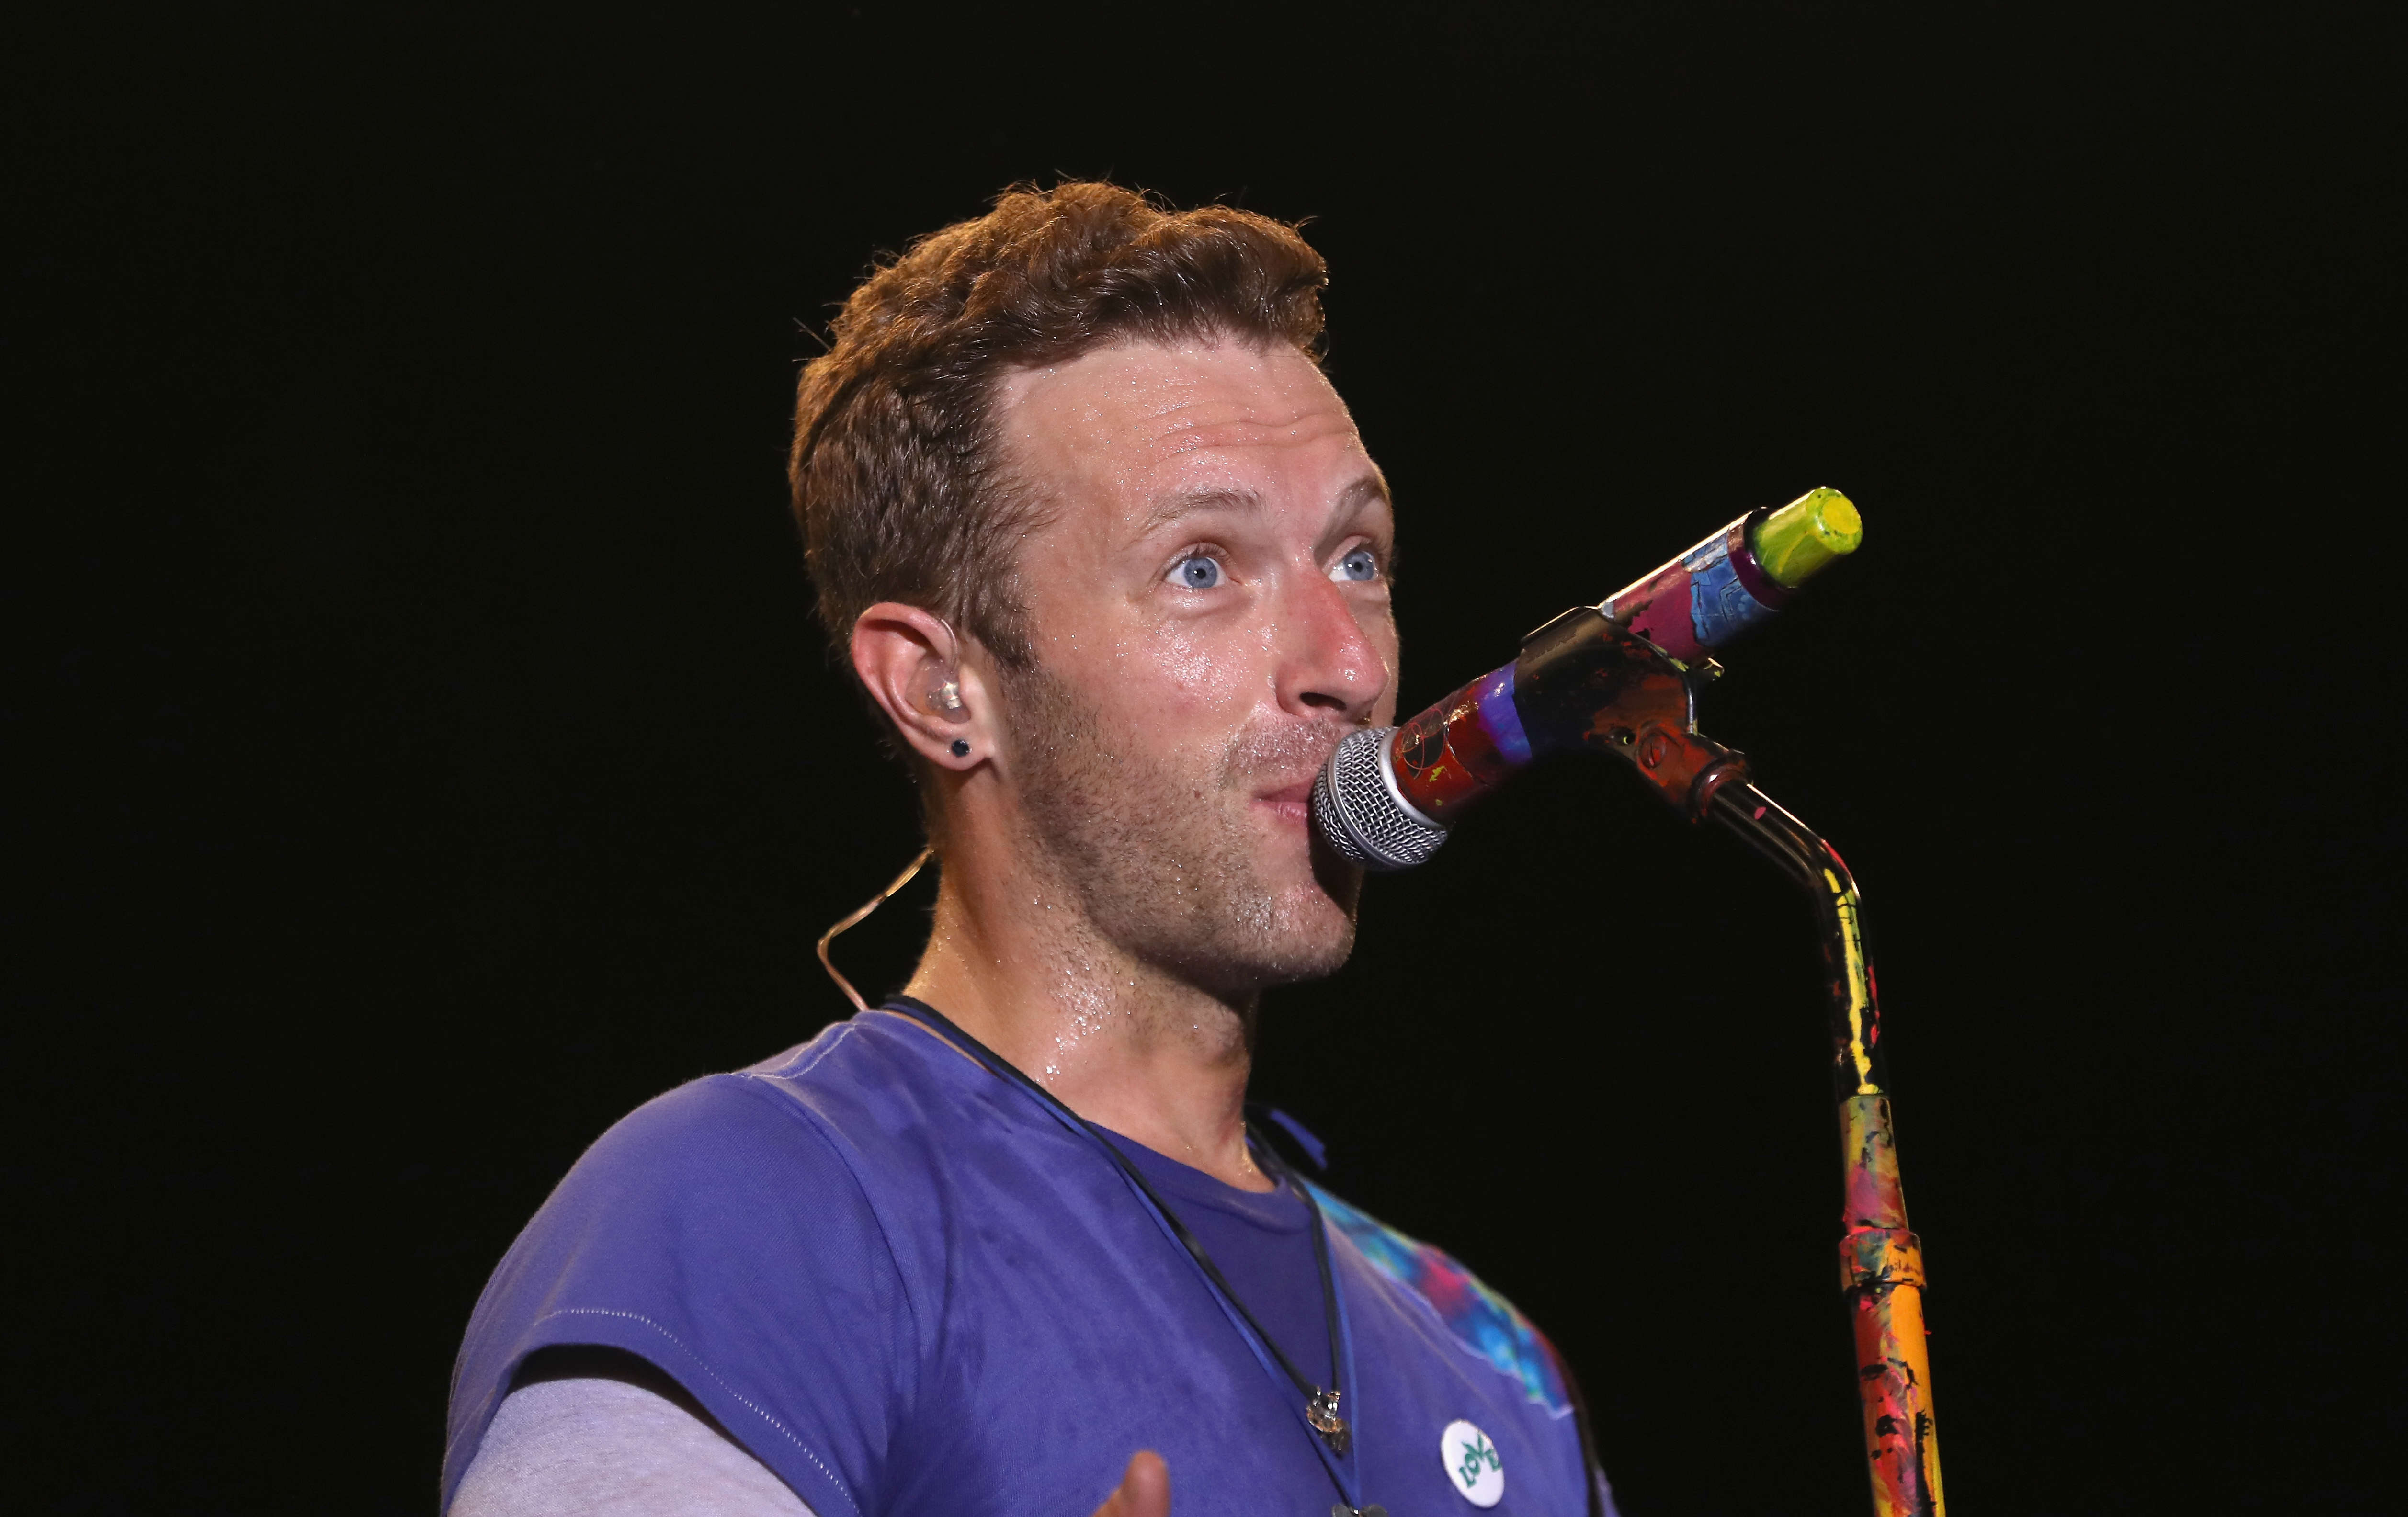 Heres What Chris Martin Did When A Fan Begged Him For Sex GettyImages 543490330